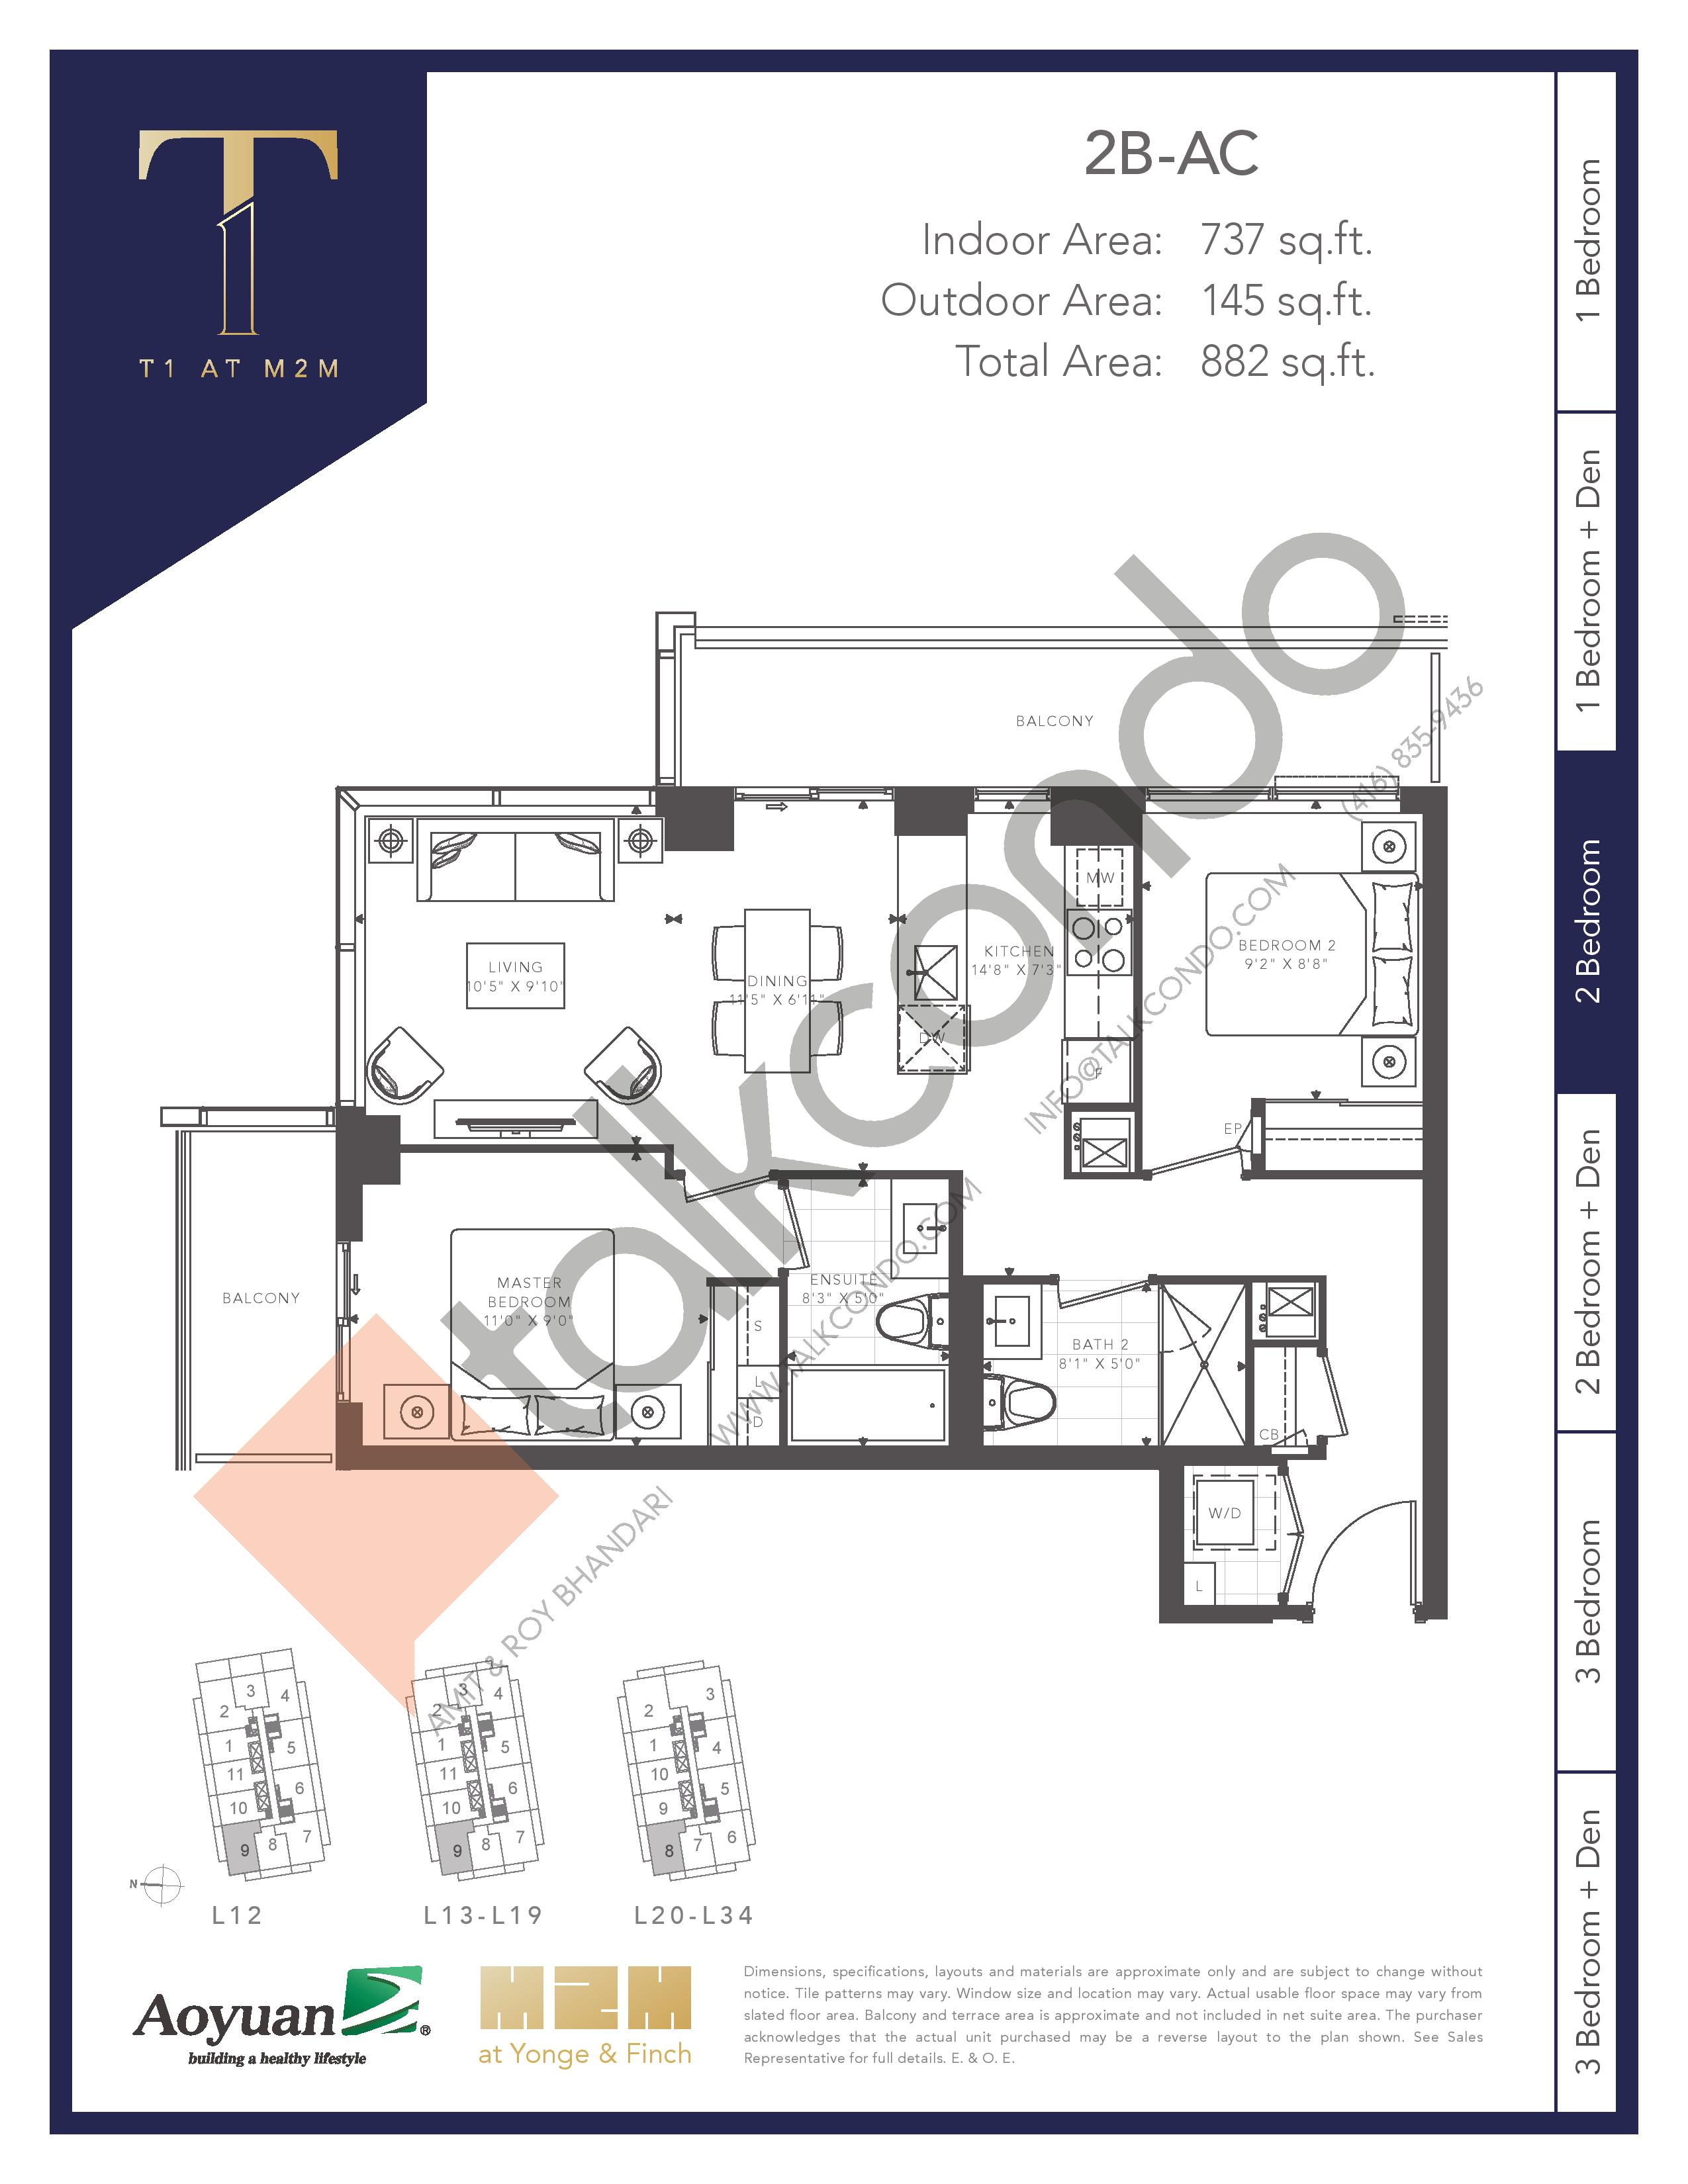 2B-AC (Tower) Floor Plan at T1 at M2M Condos - 737 sq.ft